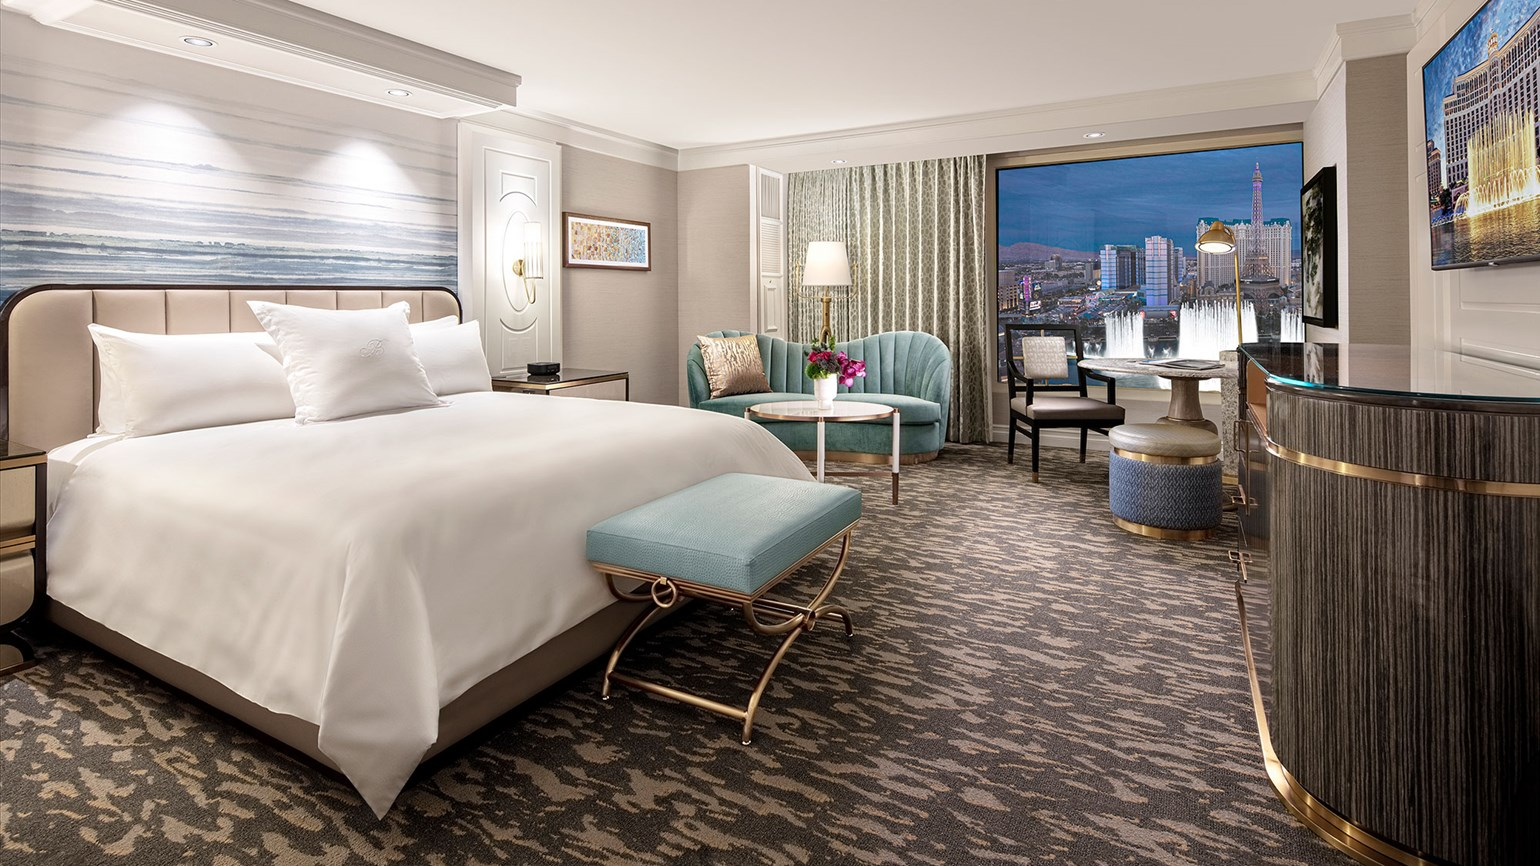 A fresh look for the Bellagio in Las Vegas